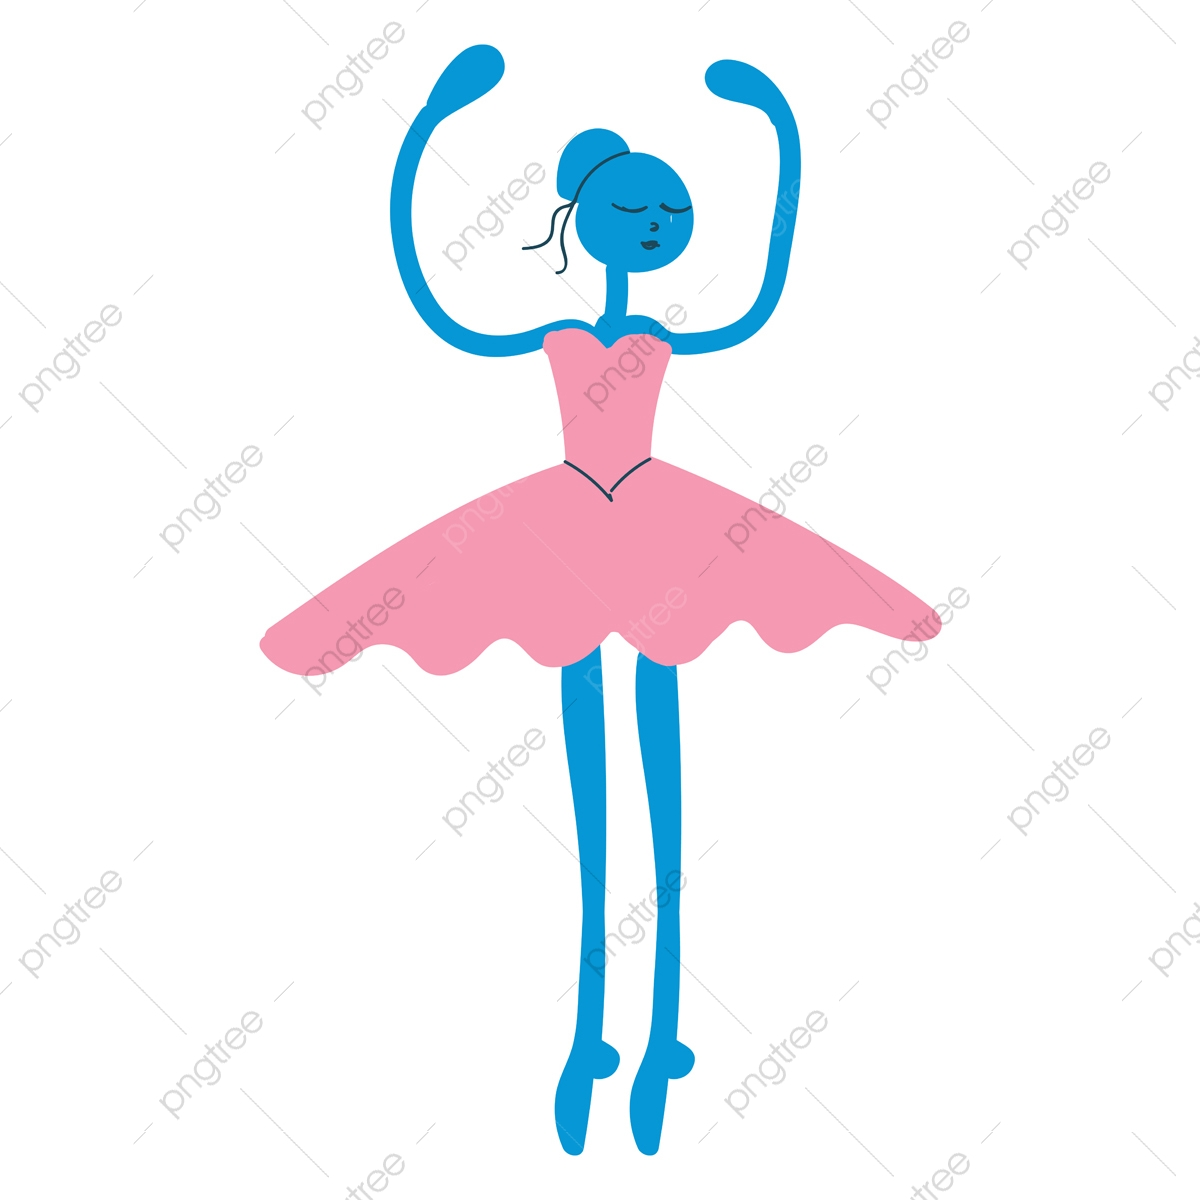 Simple Cartoon Ballerina Vector Illustration On White Background Dancer Female Dance Png And Vector With Transparent Background For Free Download